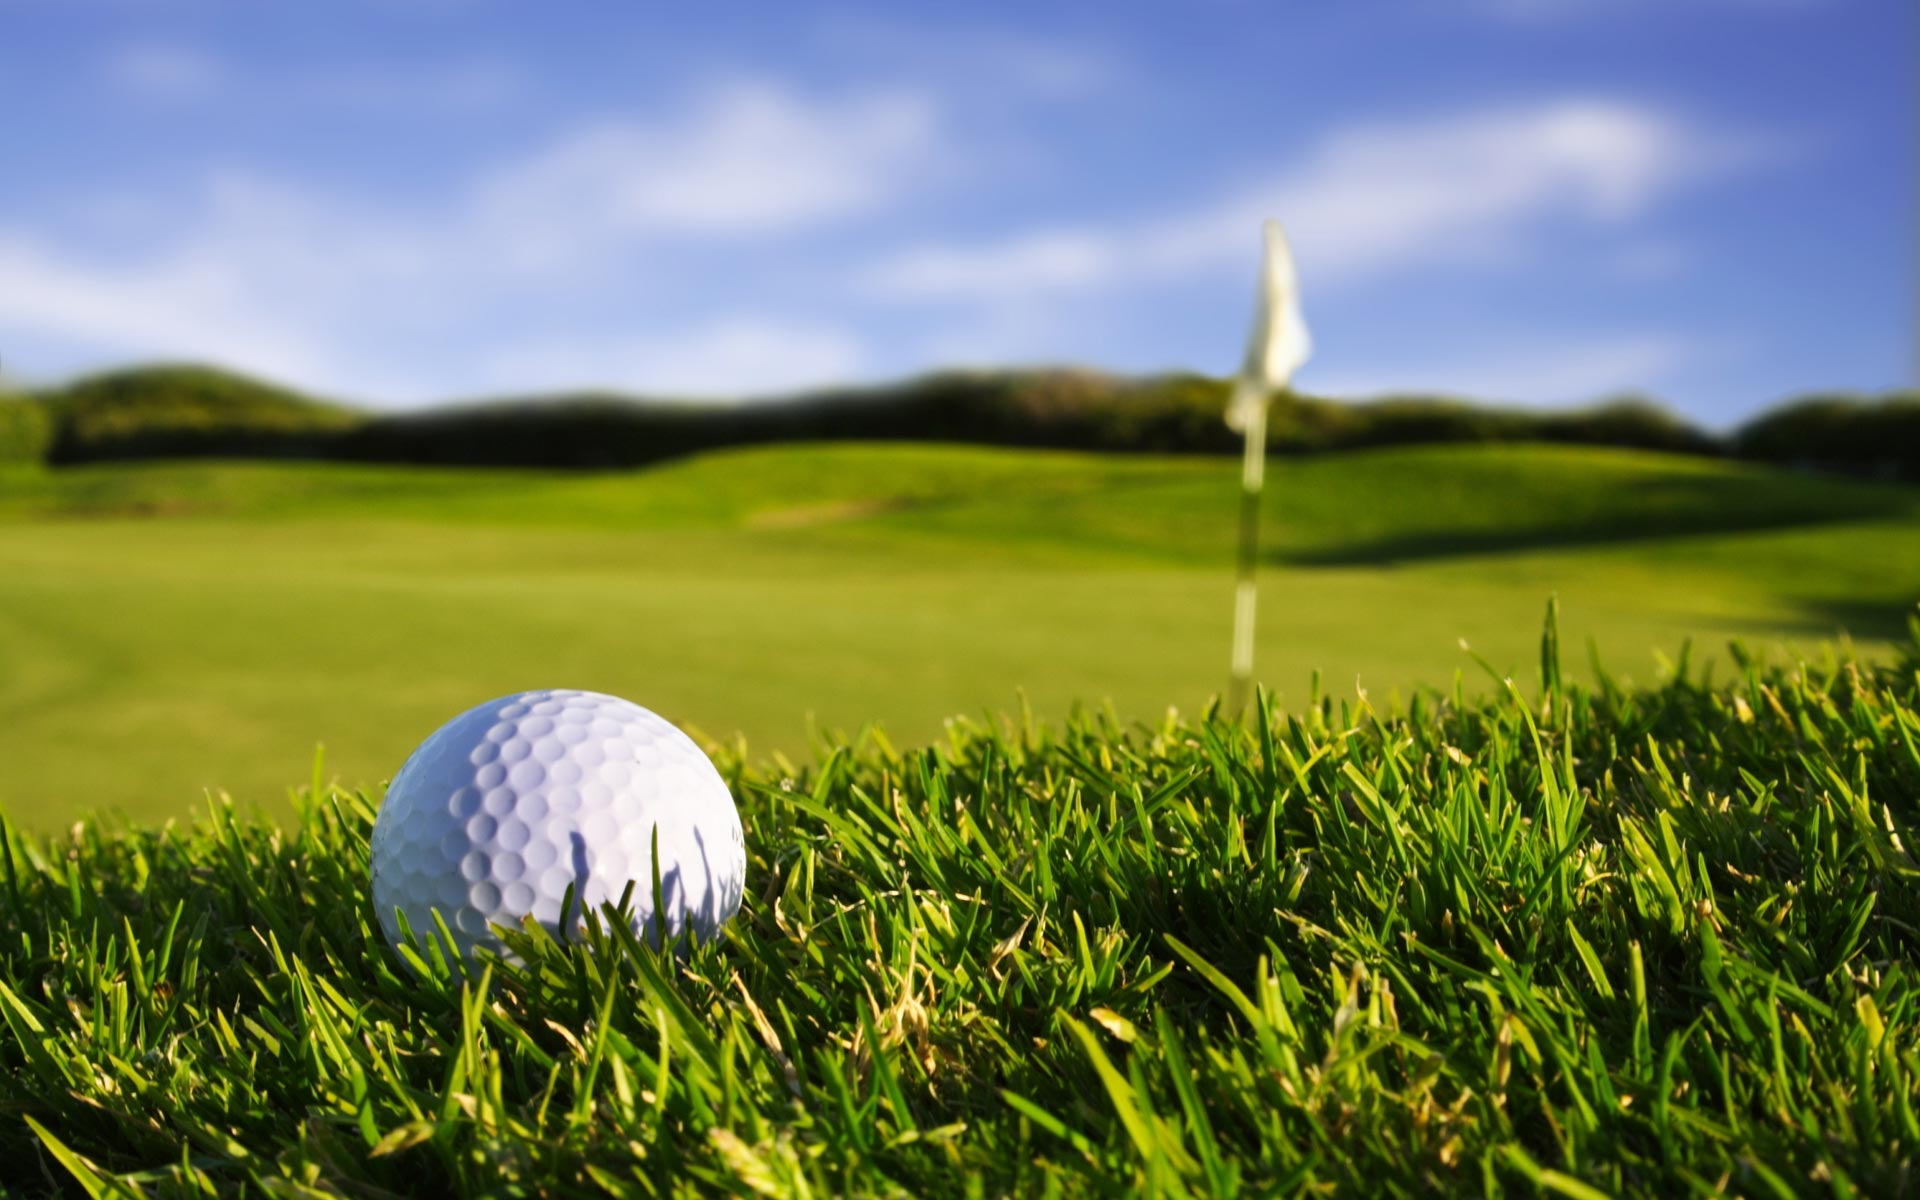 Golf Ball Wallpaper 3534 Hd Wallpapers in Sports   Imagescicom 1920x1200